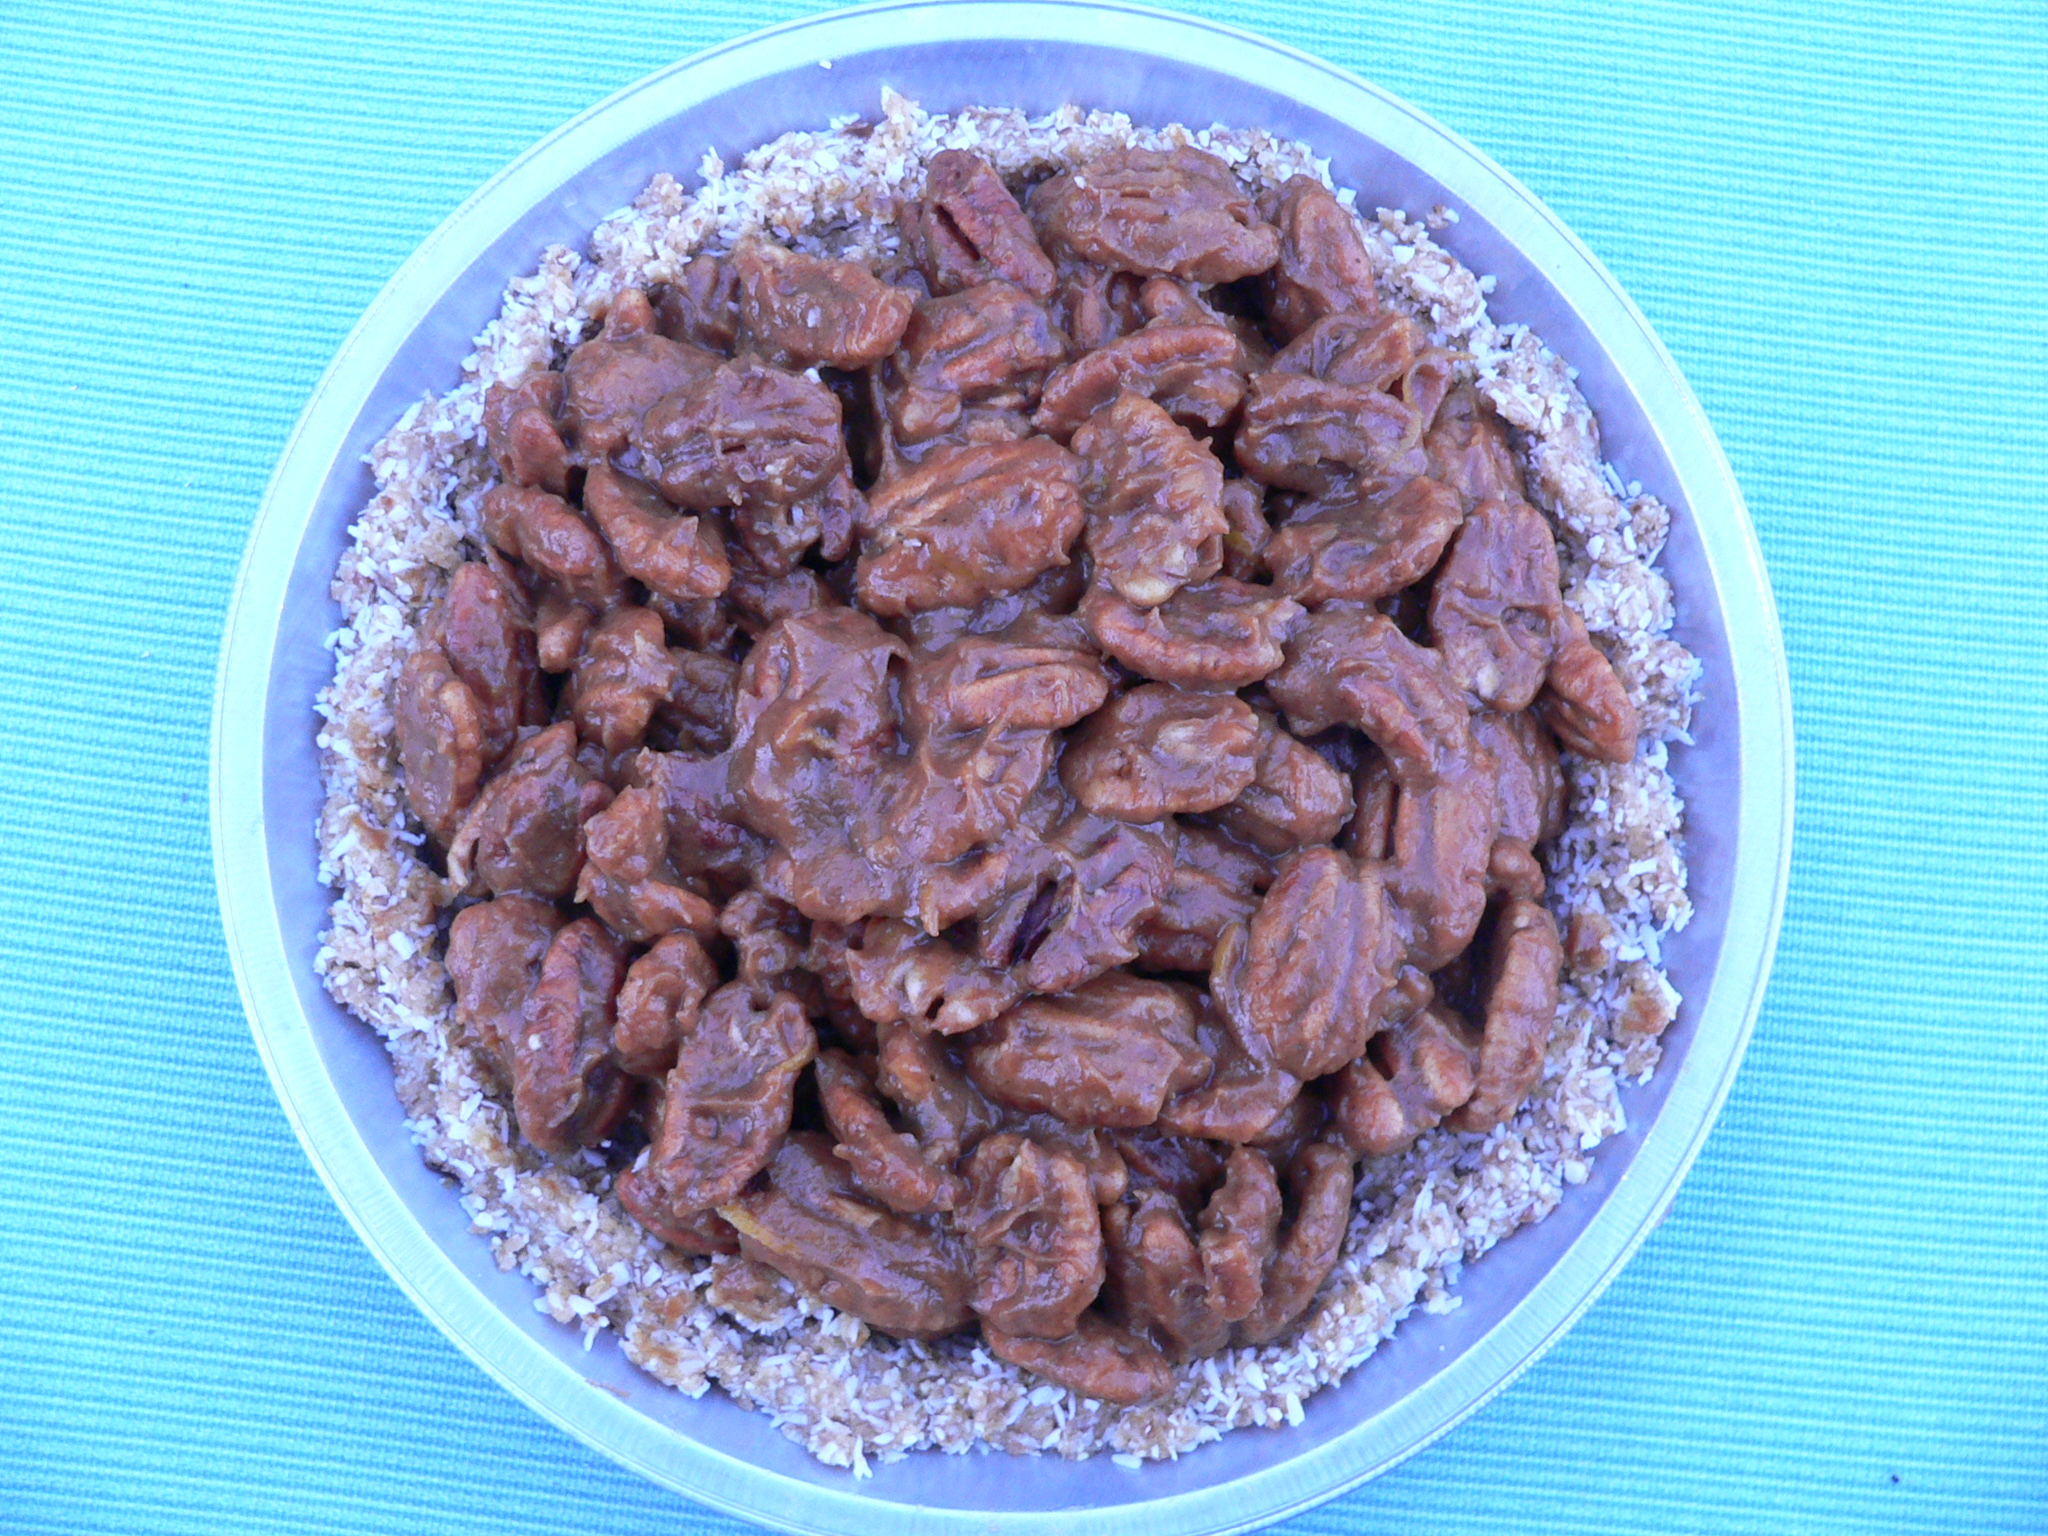 Raw Pecan Pie – EATING INNATELY